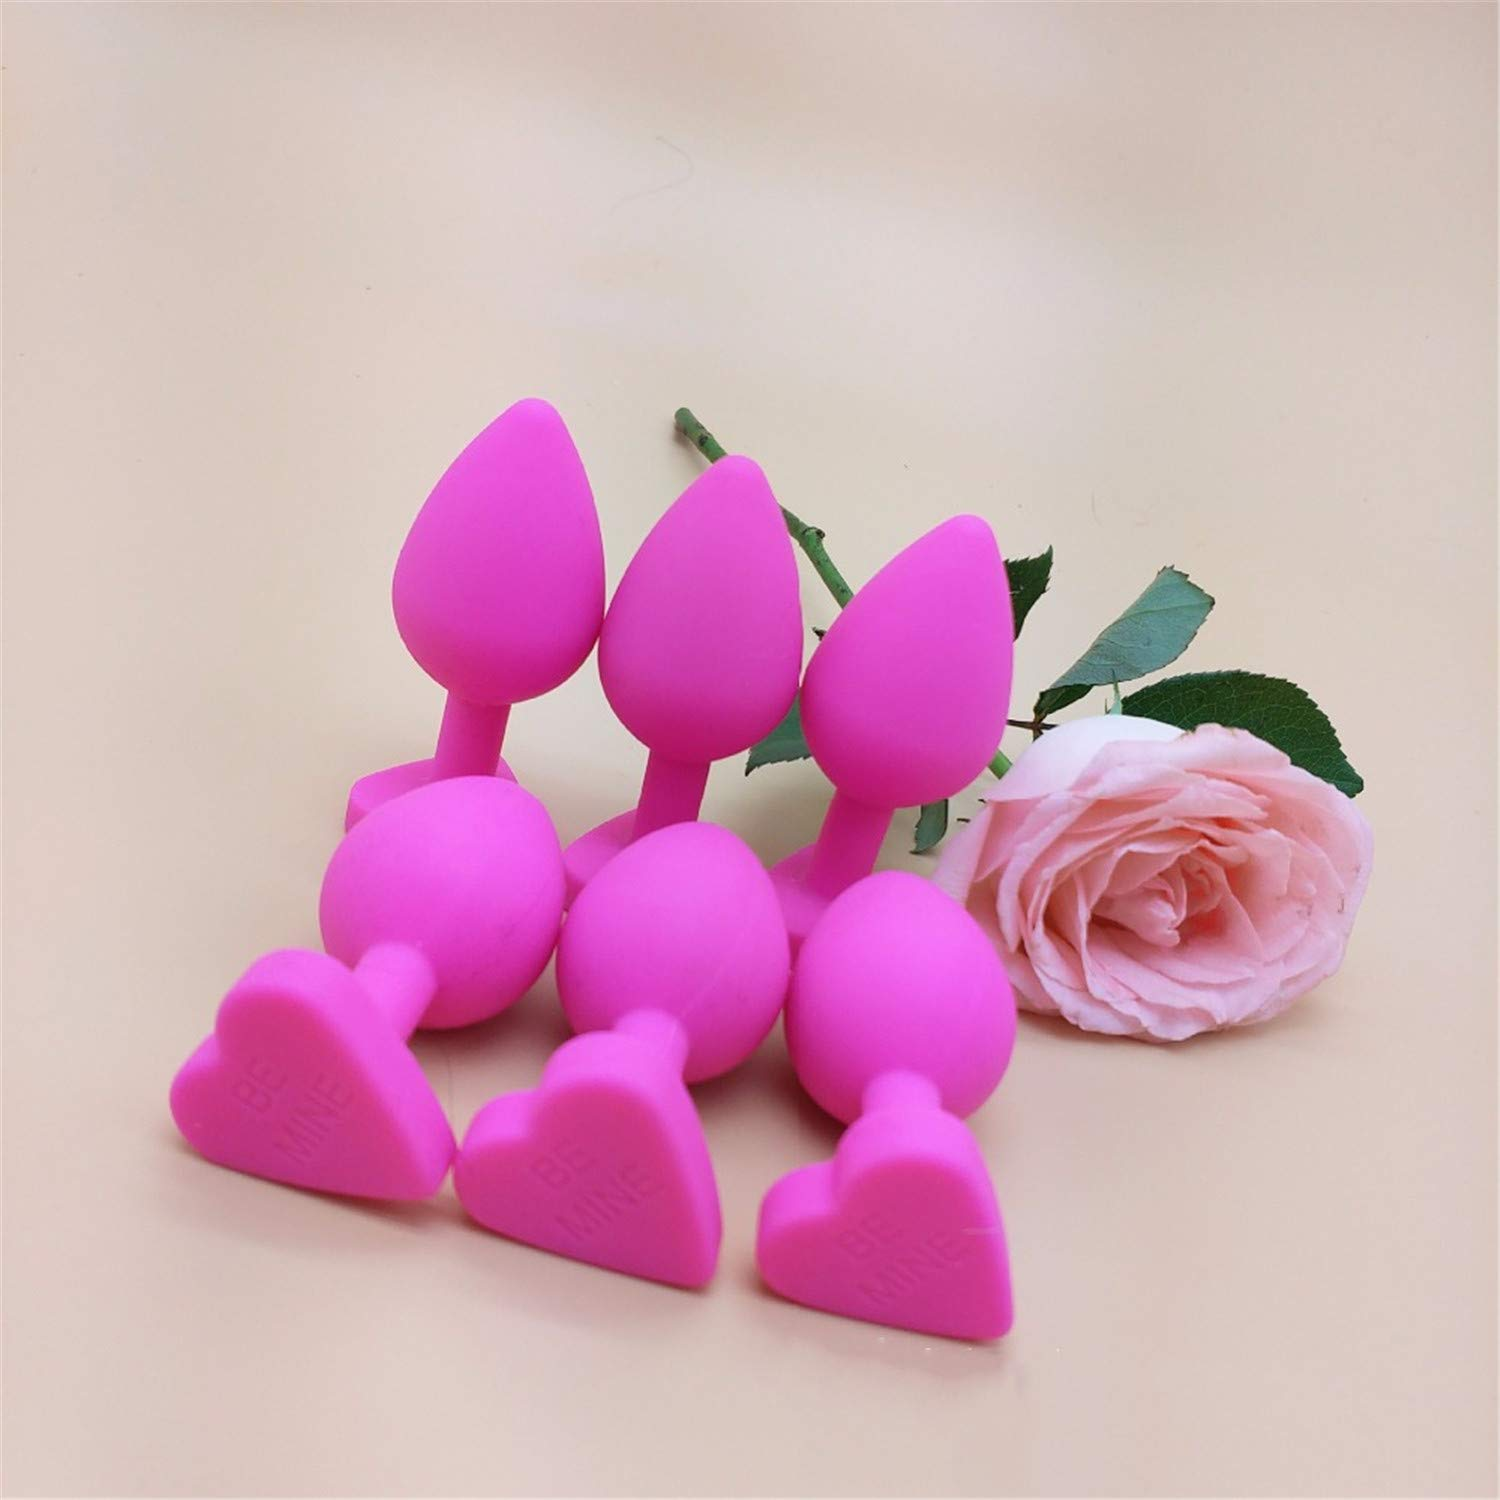 Amazon.com: 1 PC Size M Full Silicone Anal Plug Sex Toys for Women Men Gays  Erotic Sexy Anus Butt Plugs Heart Base Beads Anal Sex Products: Health ...